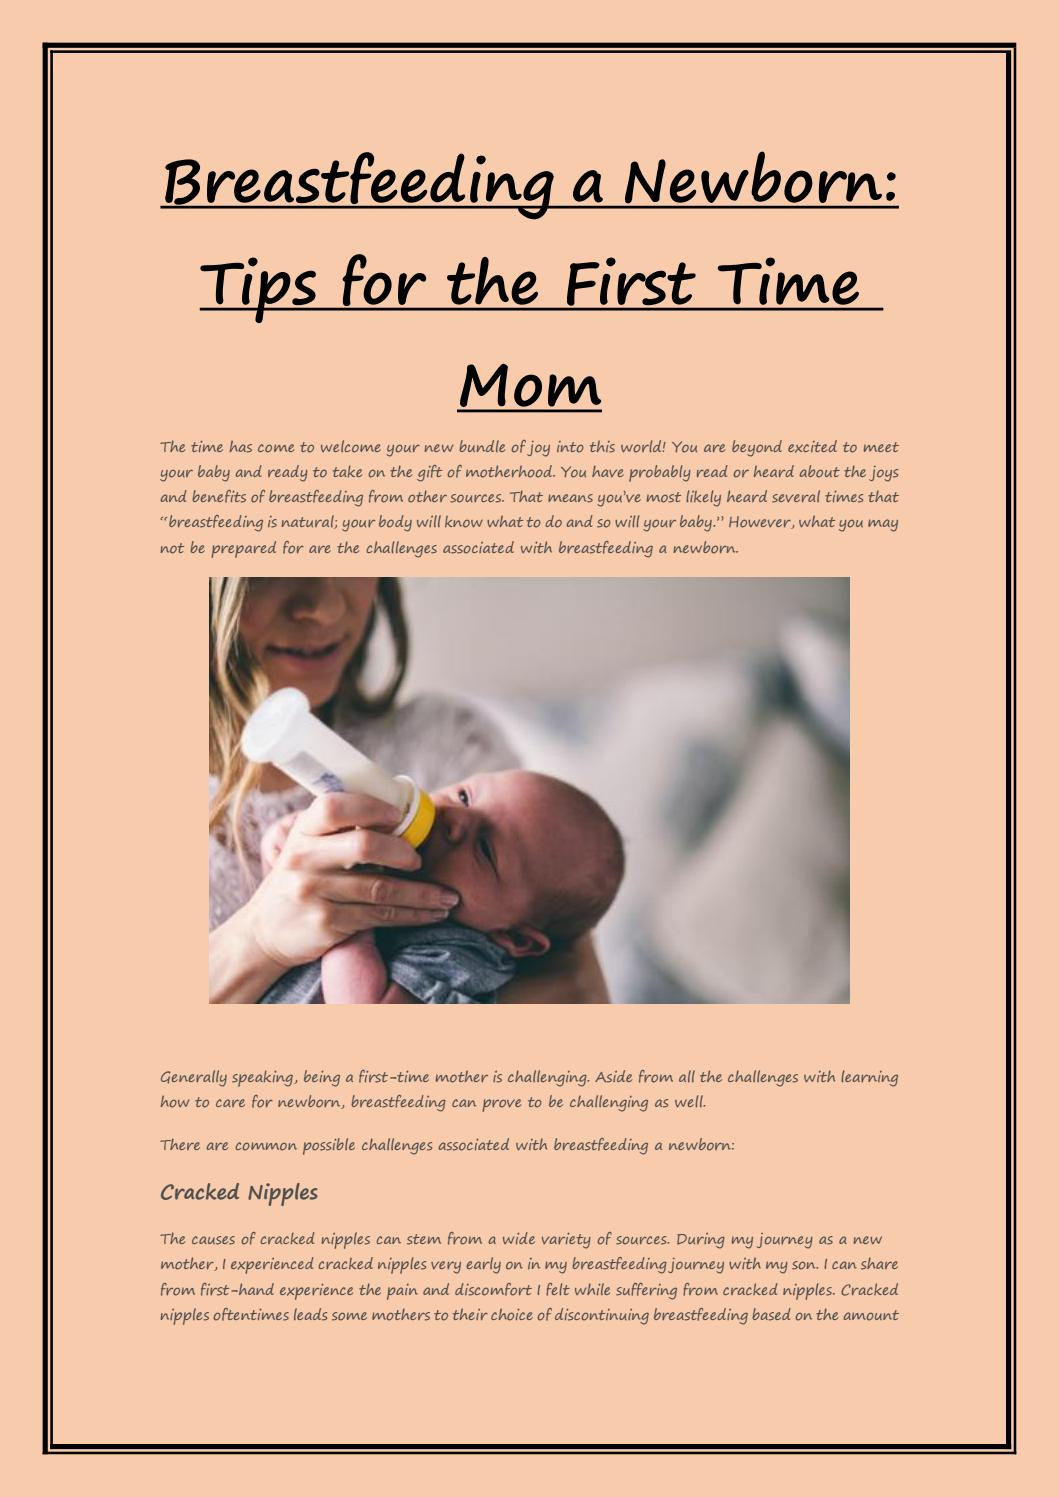 Breastfeeding a Newborn: Tips for the First Time Mom by